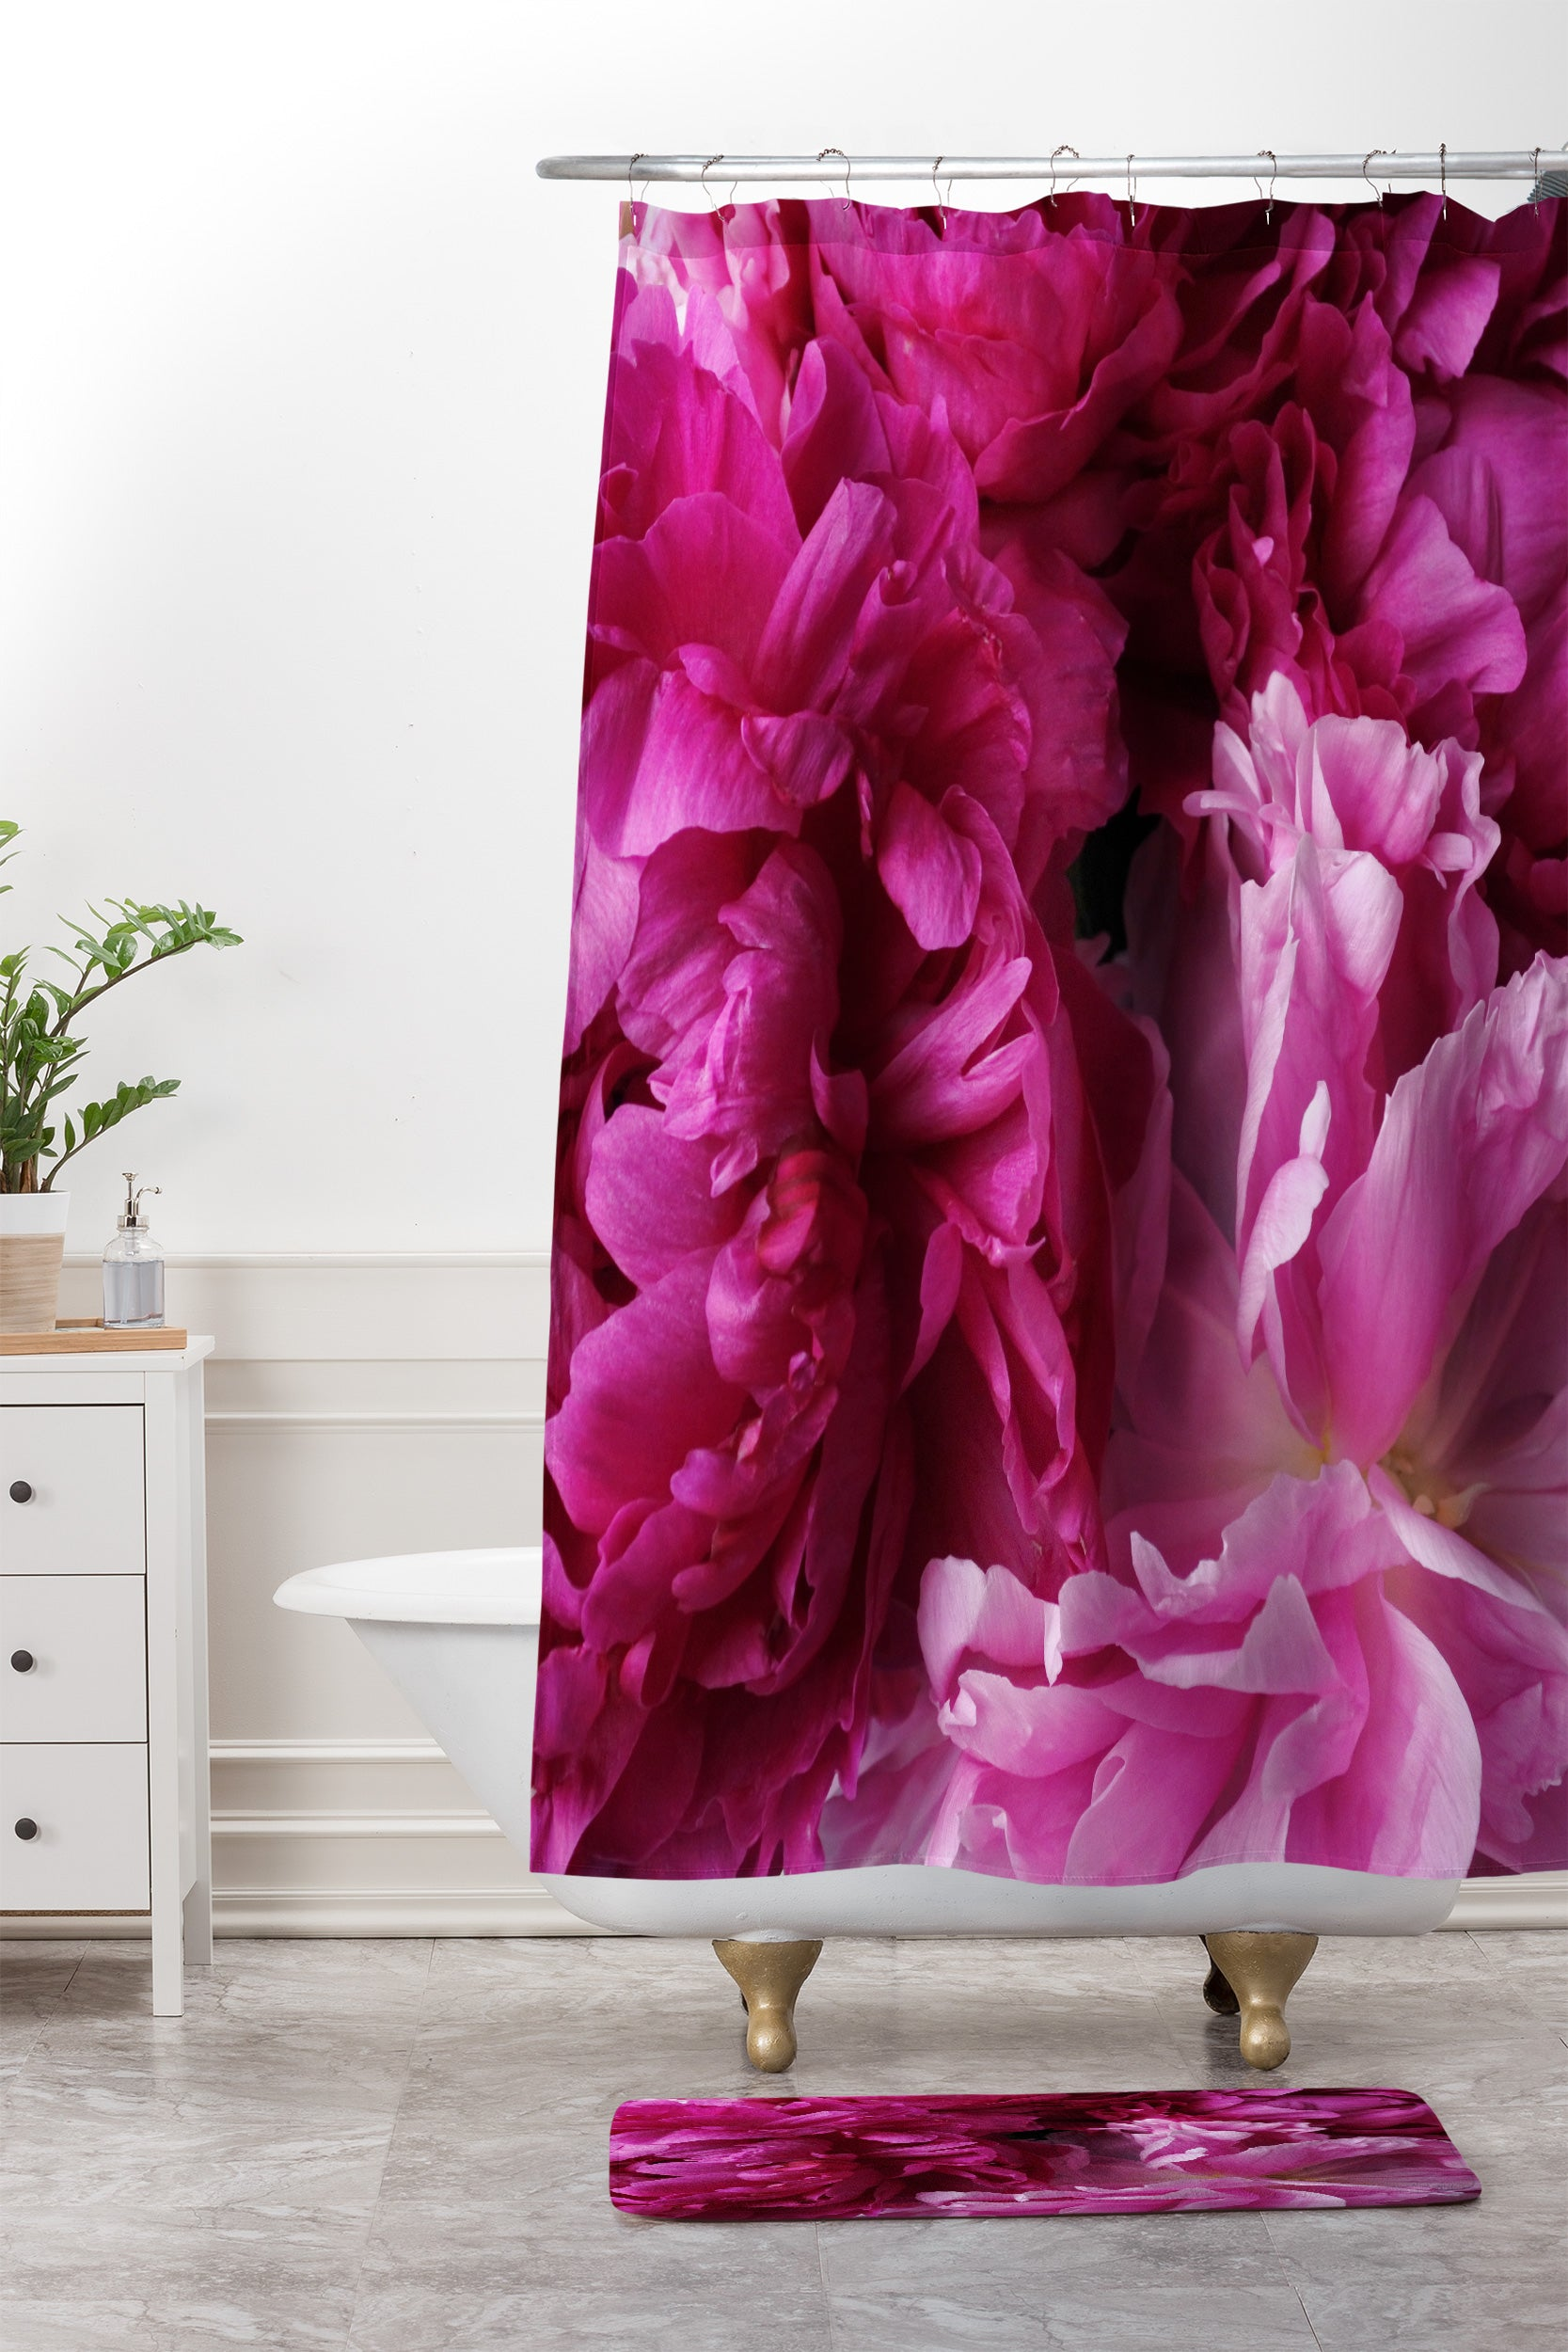 Glamour Pink Peonies Shower Curtain And Mat By Lisa Argyropoulos